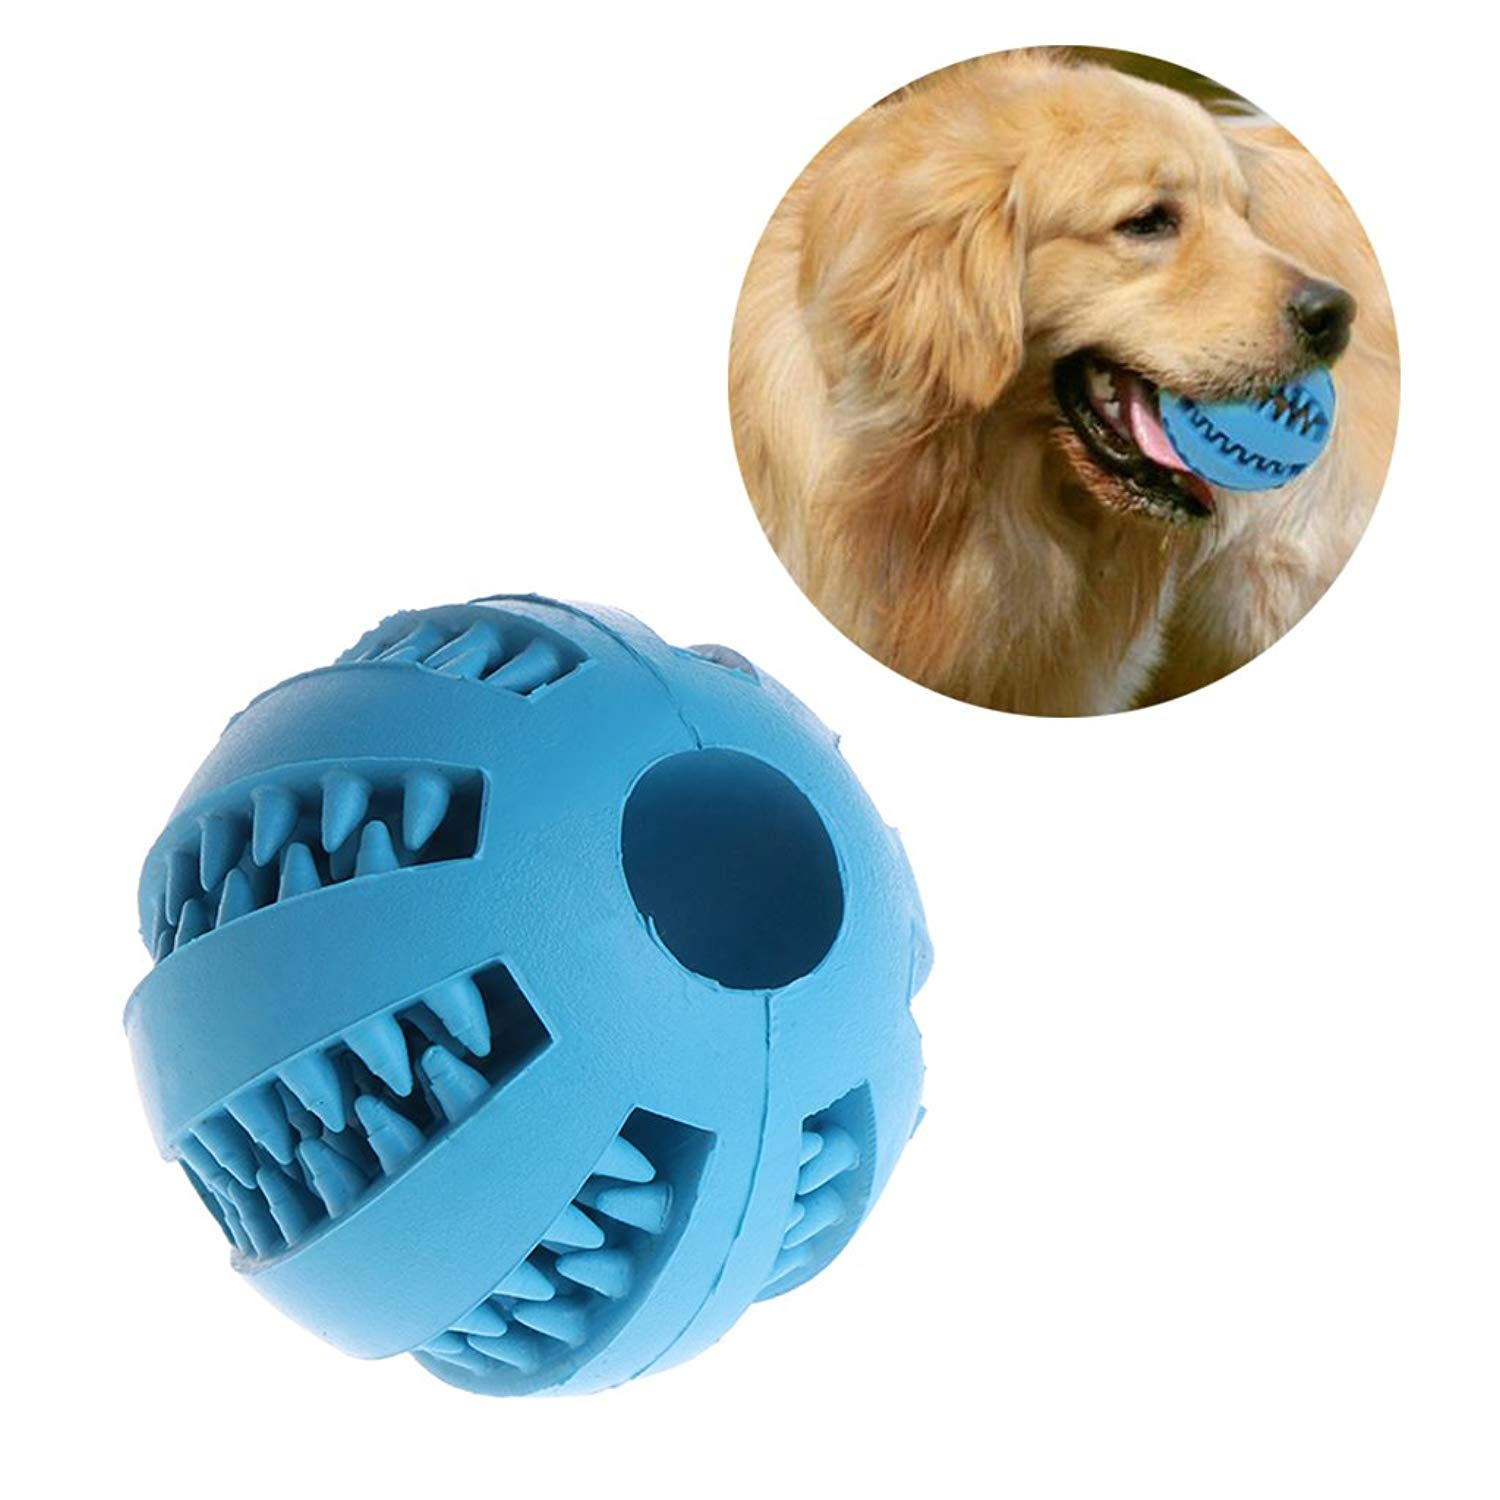 NNDA CO Pet Dog Chew Toy Treat Dispensing Ball Bite-Resistant Clean Teeth Natural Rubber ,1.97inch